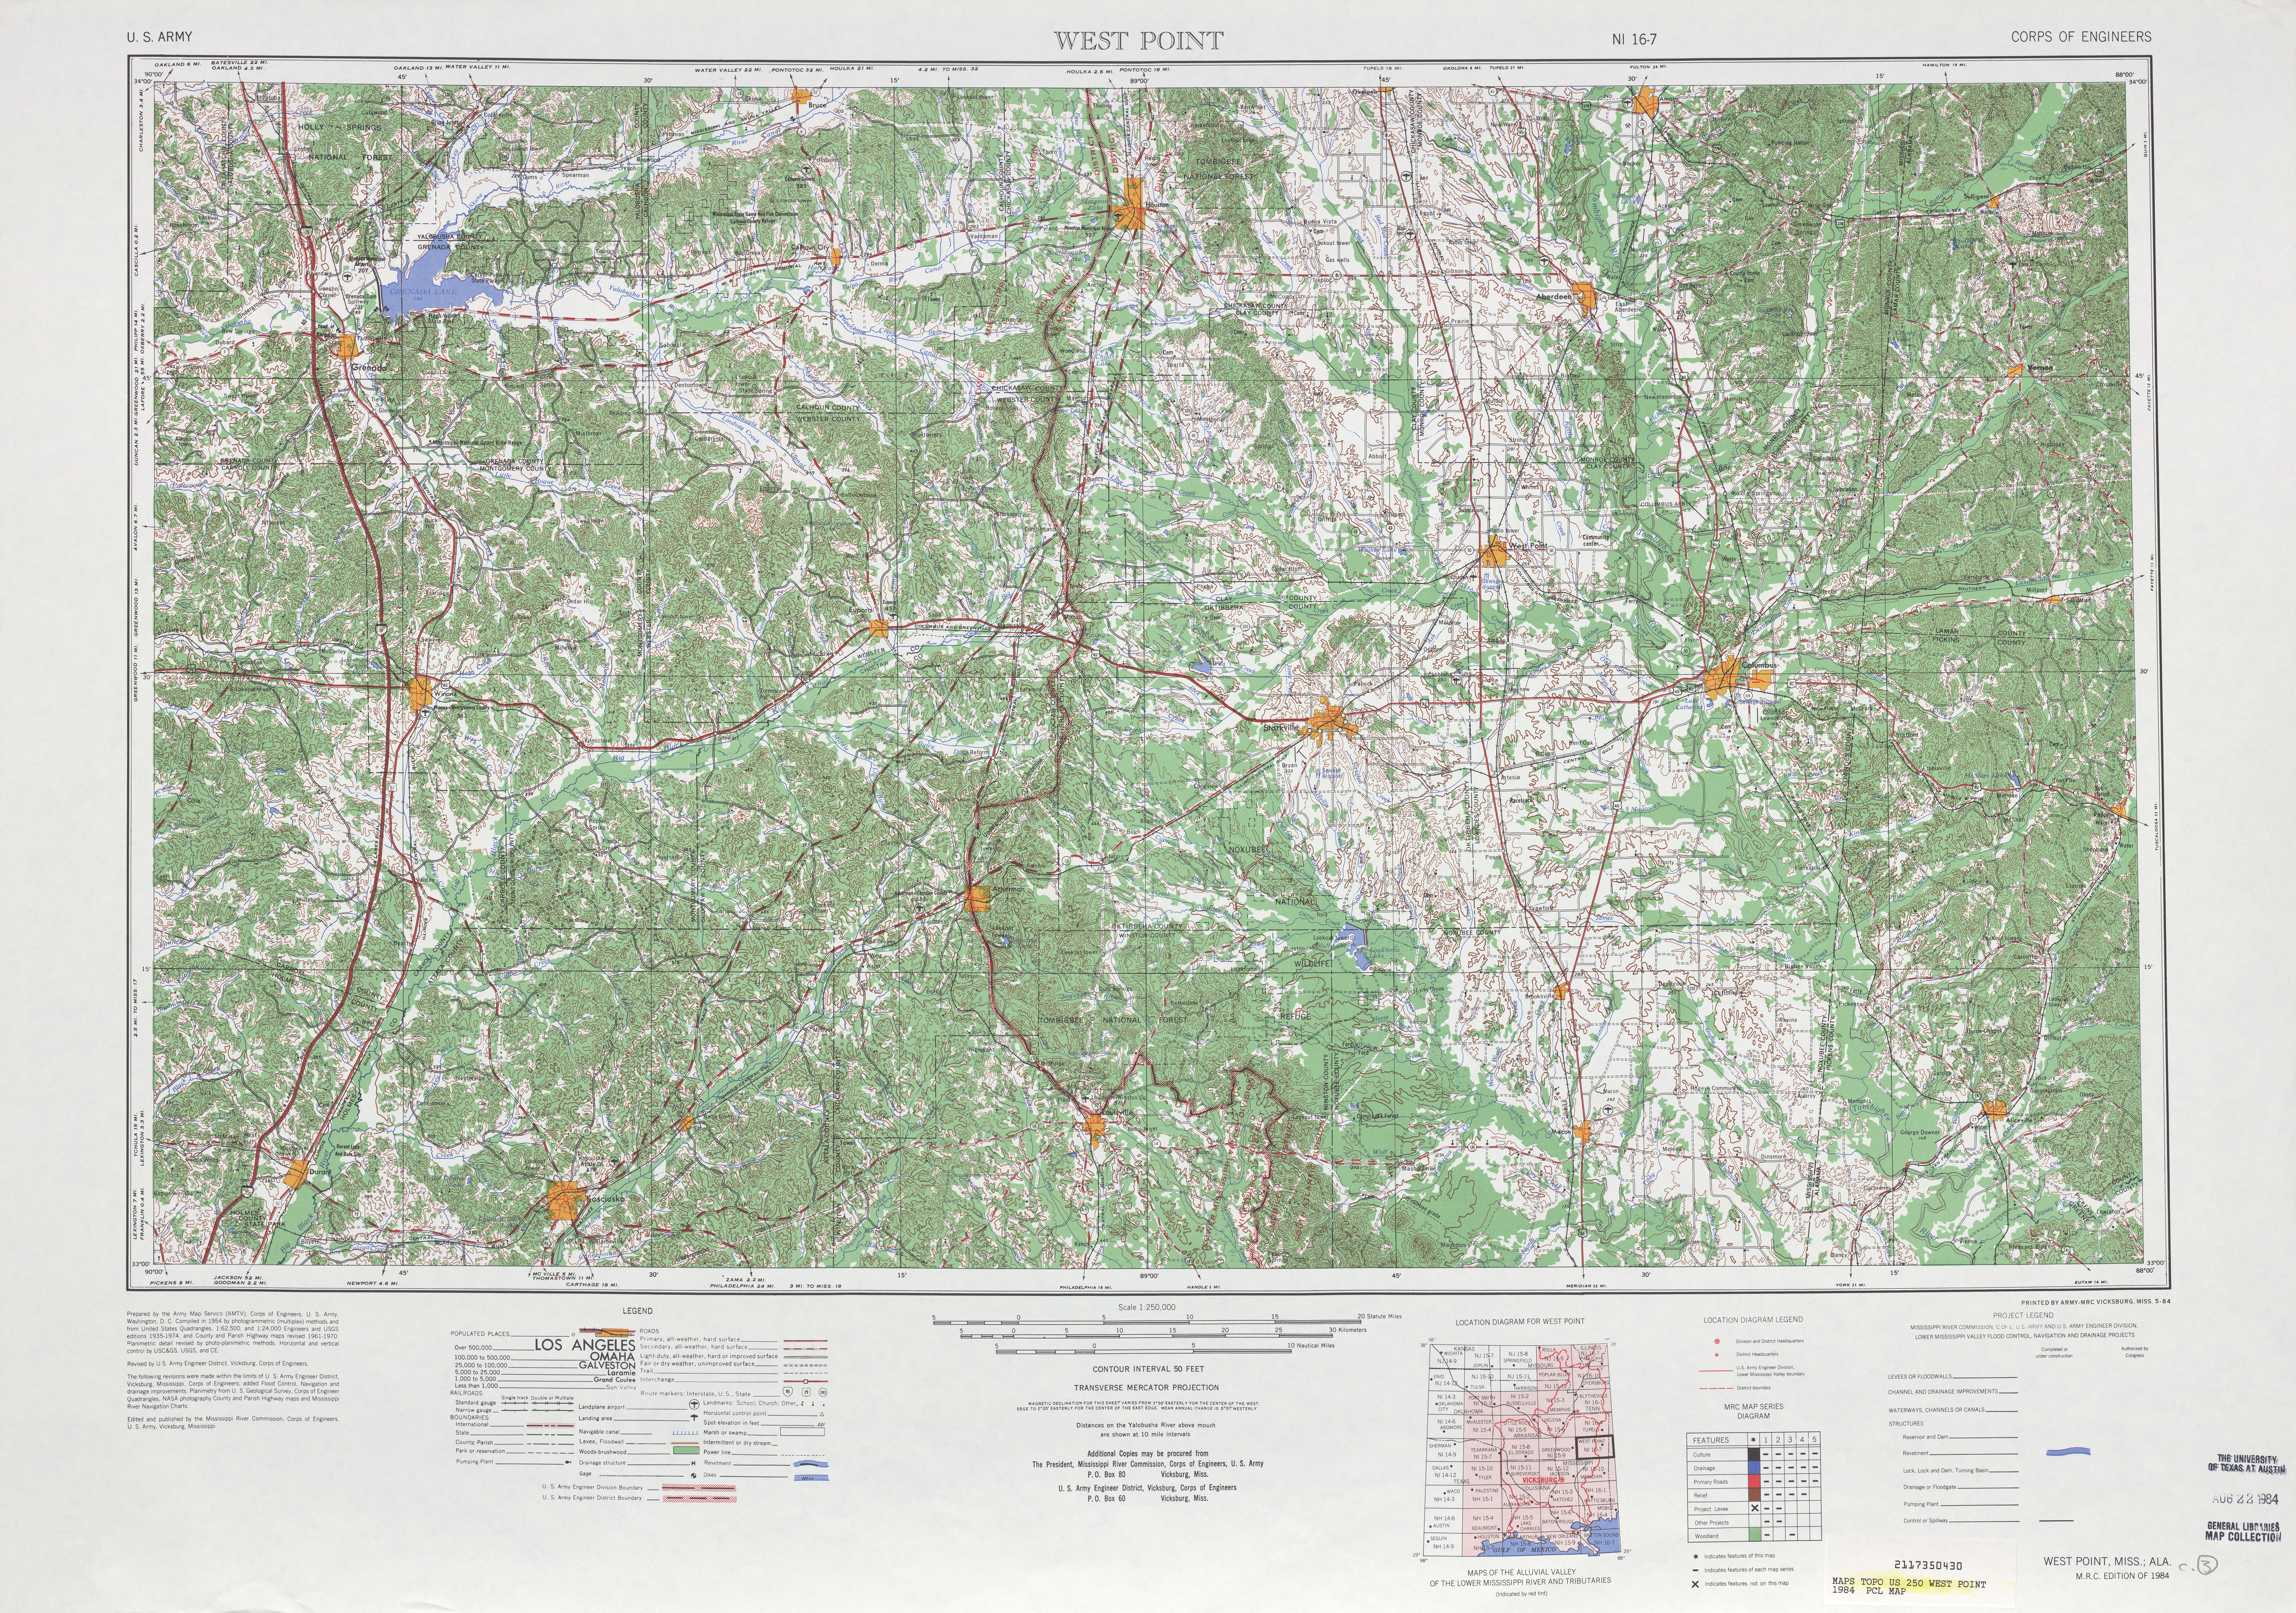 West Point Topographic Map Sheet, United States 1984